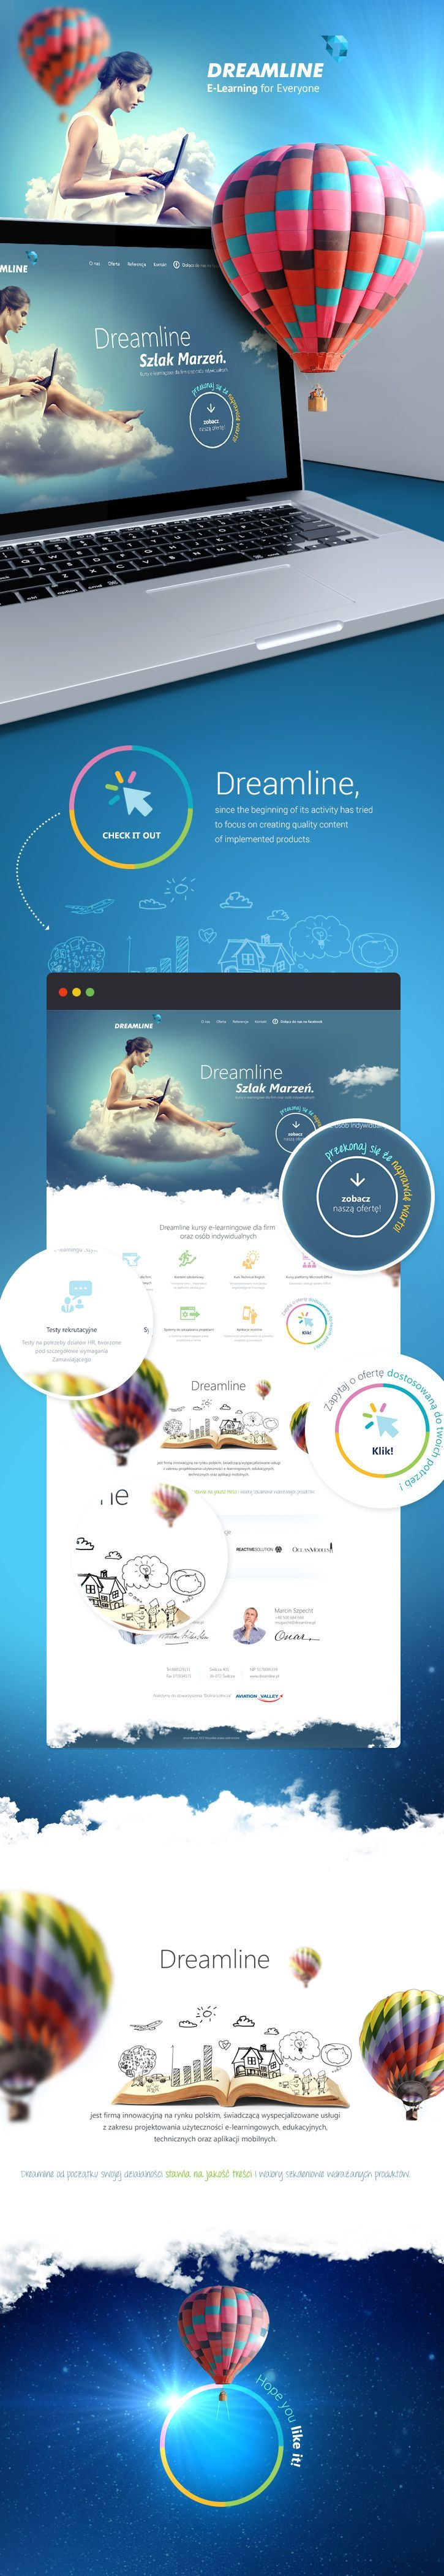 Dreamline | #webdesign #it #web